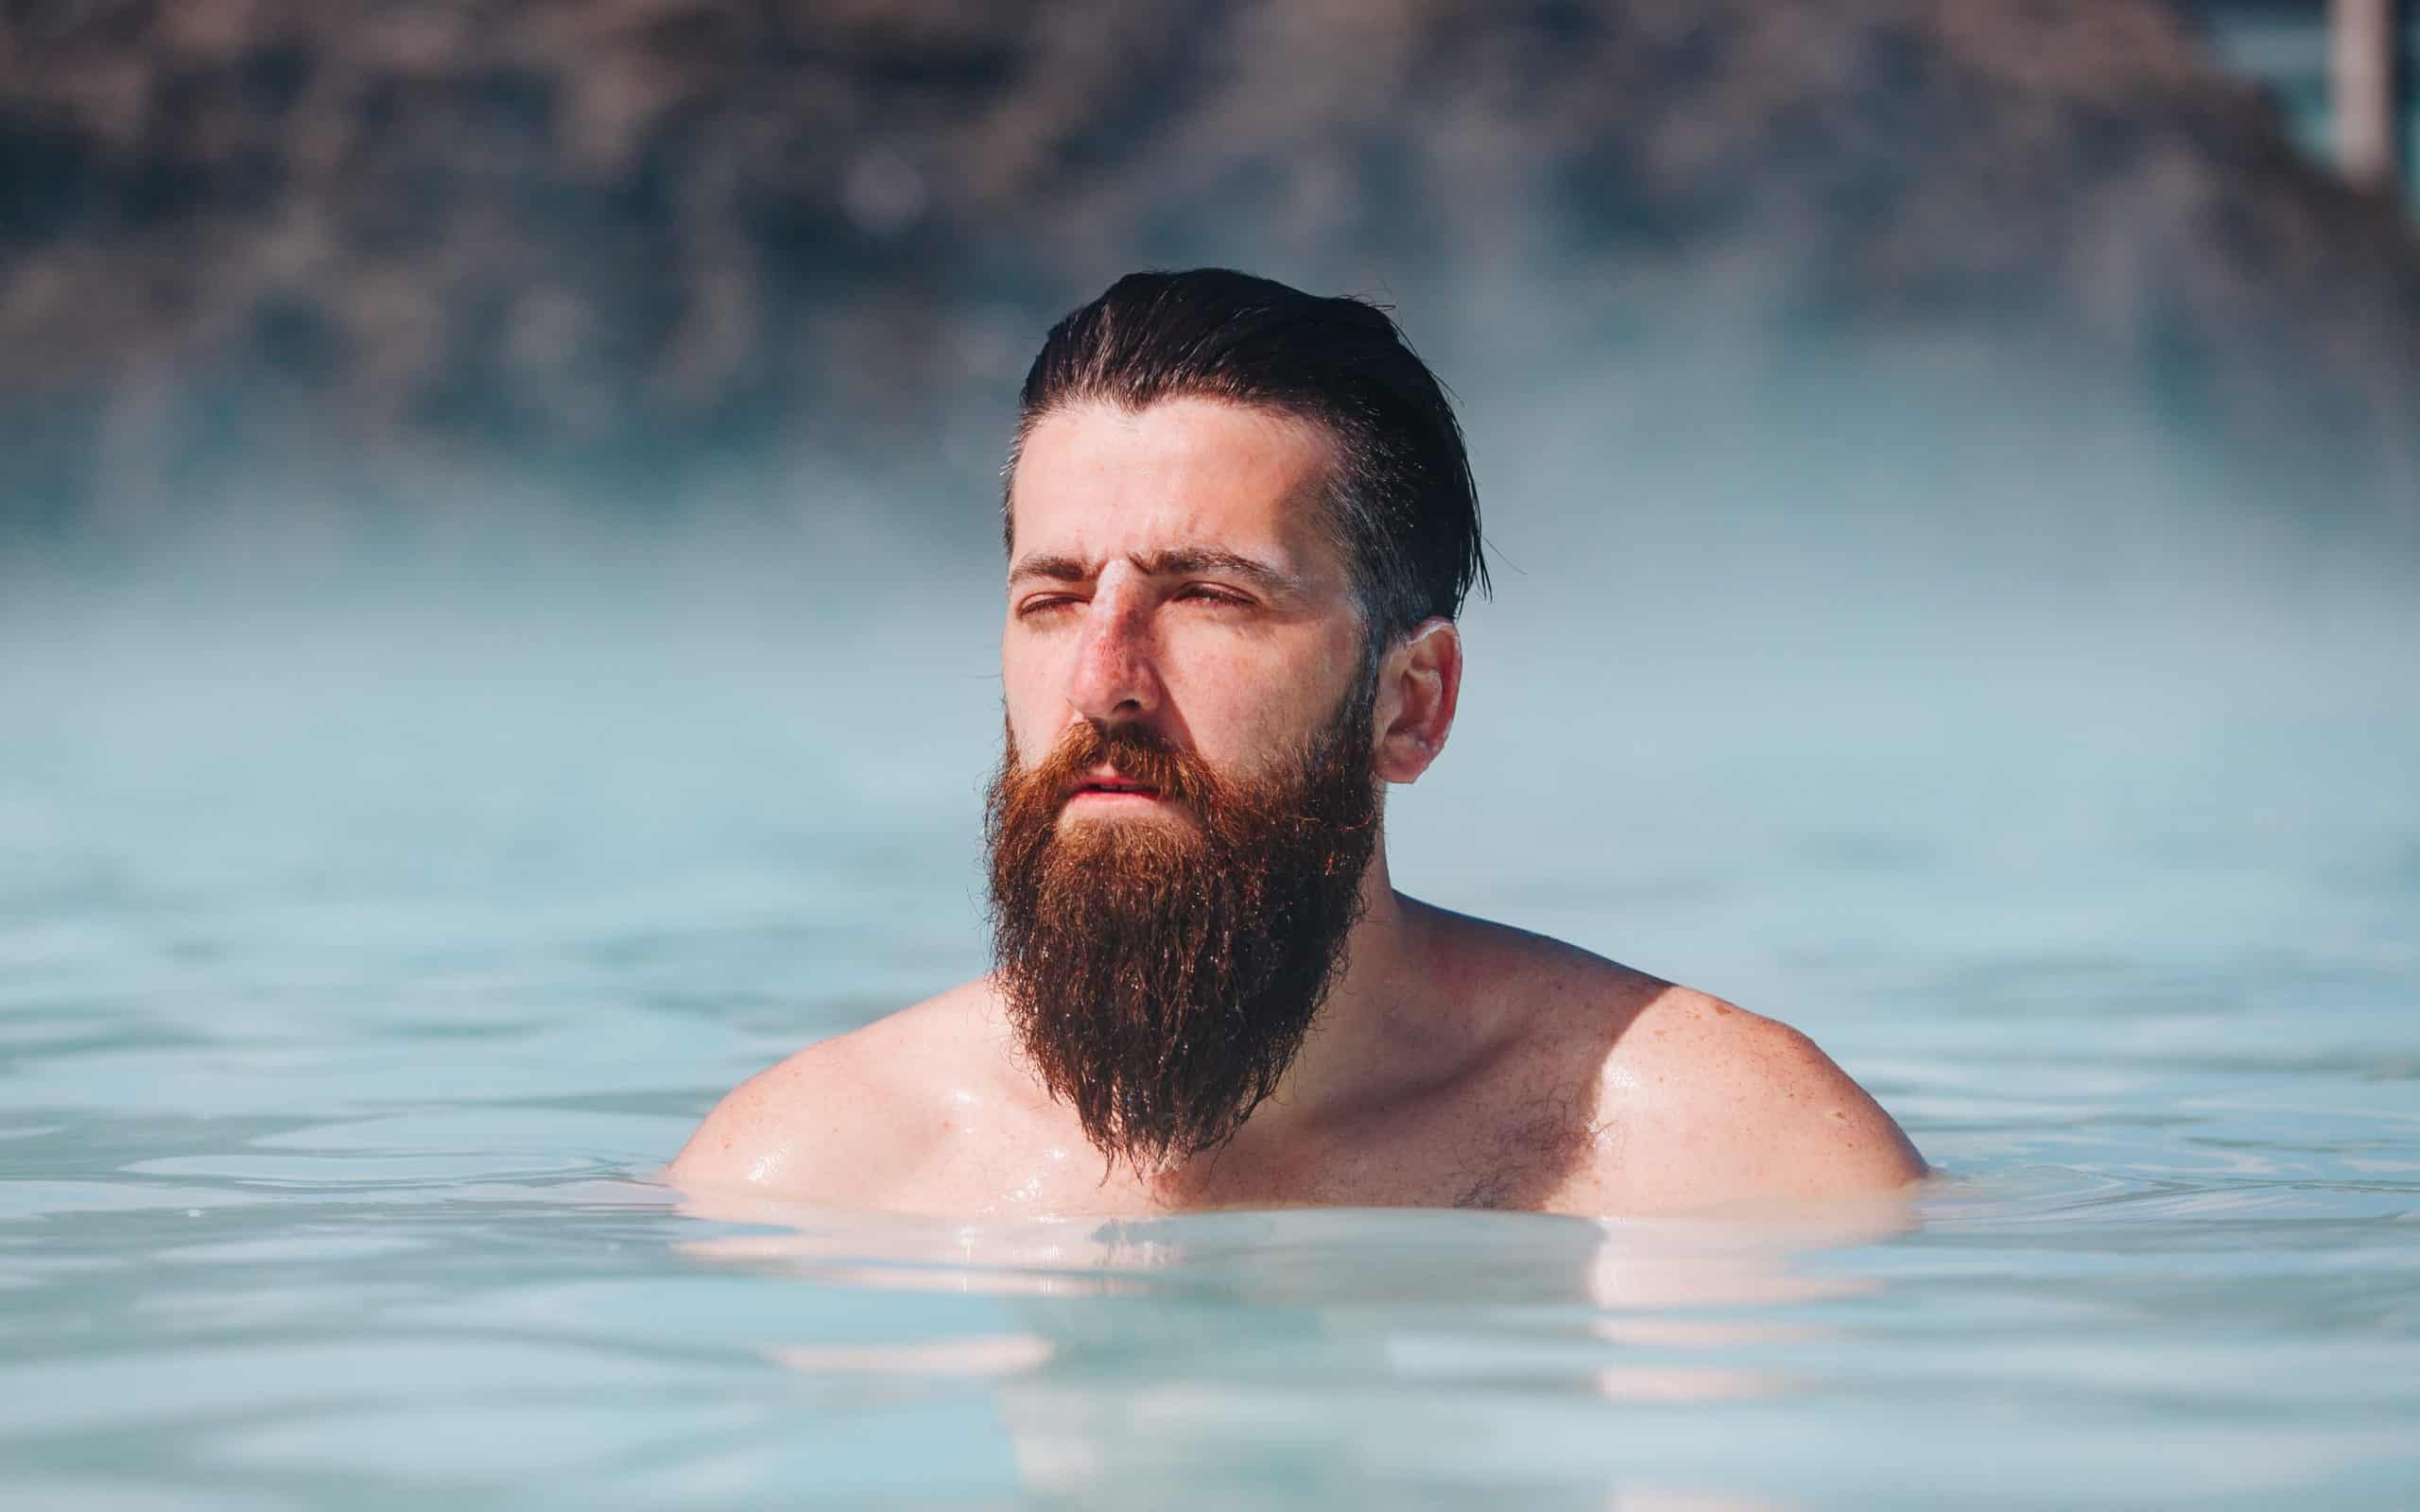 Have You Noticed Any Beard Growth Yet?